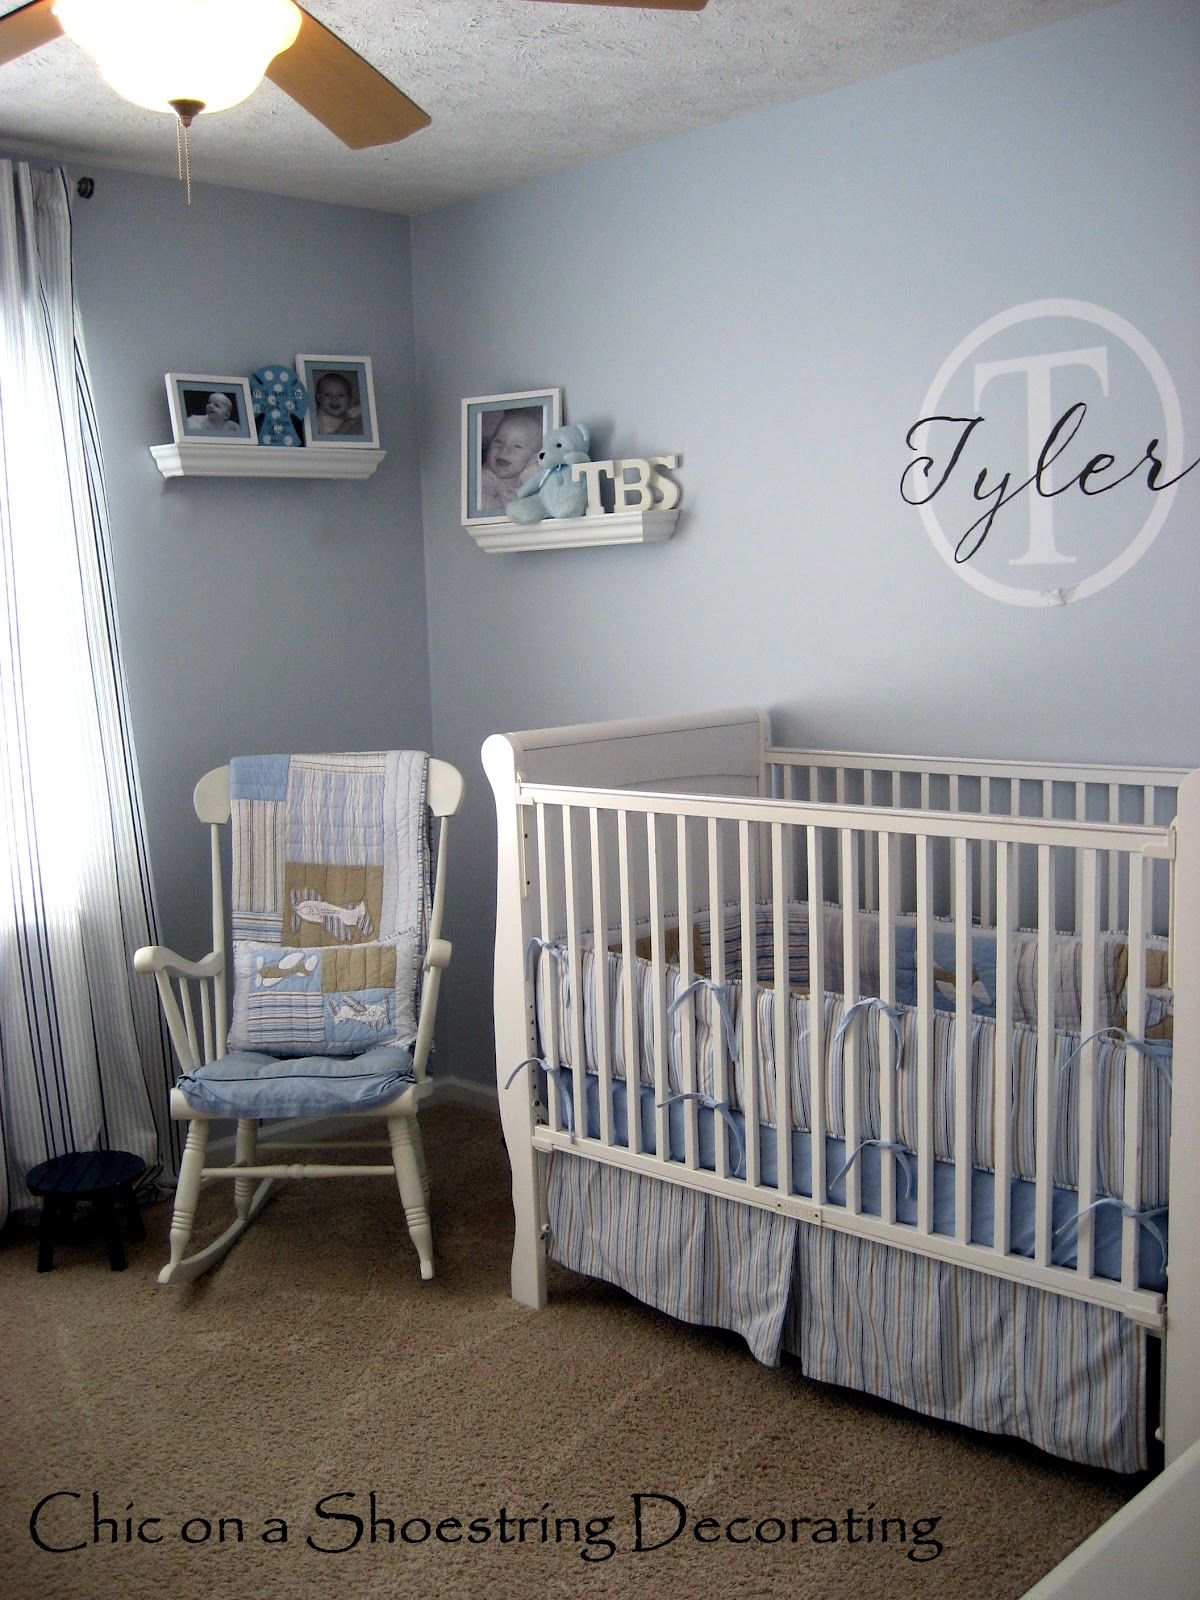 Chic on a Shoestring Decorating: My Boy's Nursery Tour